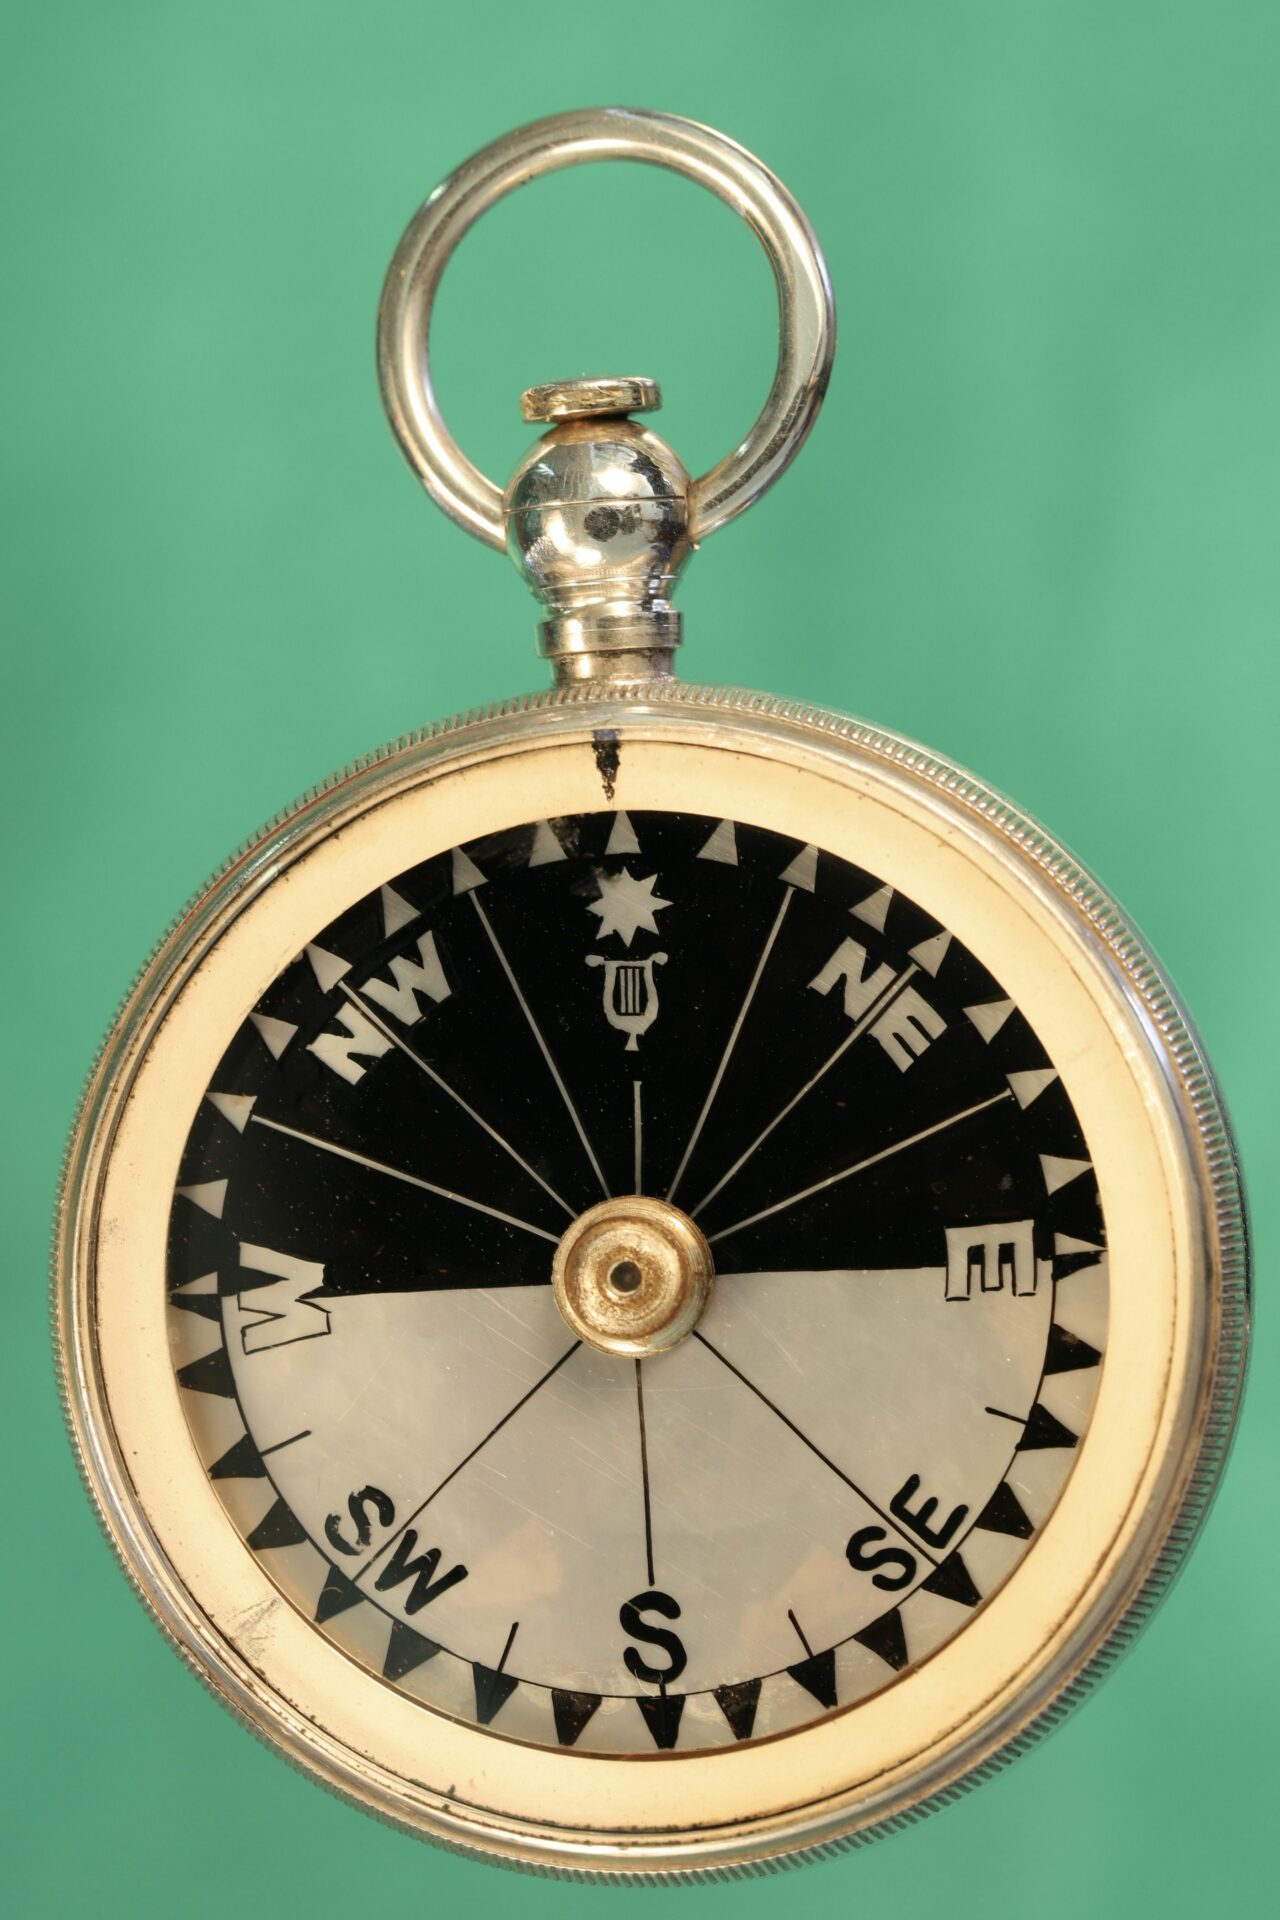 Image of compass from Cairns Silver Pocket Barometer Compendium c1892